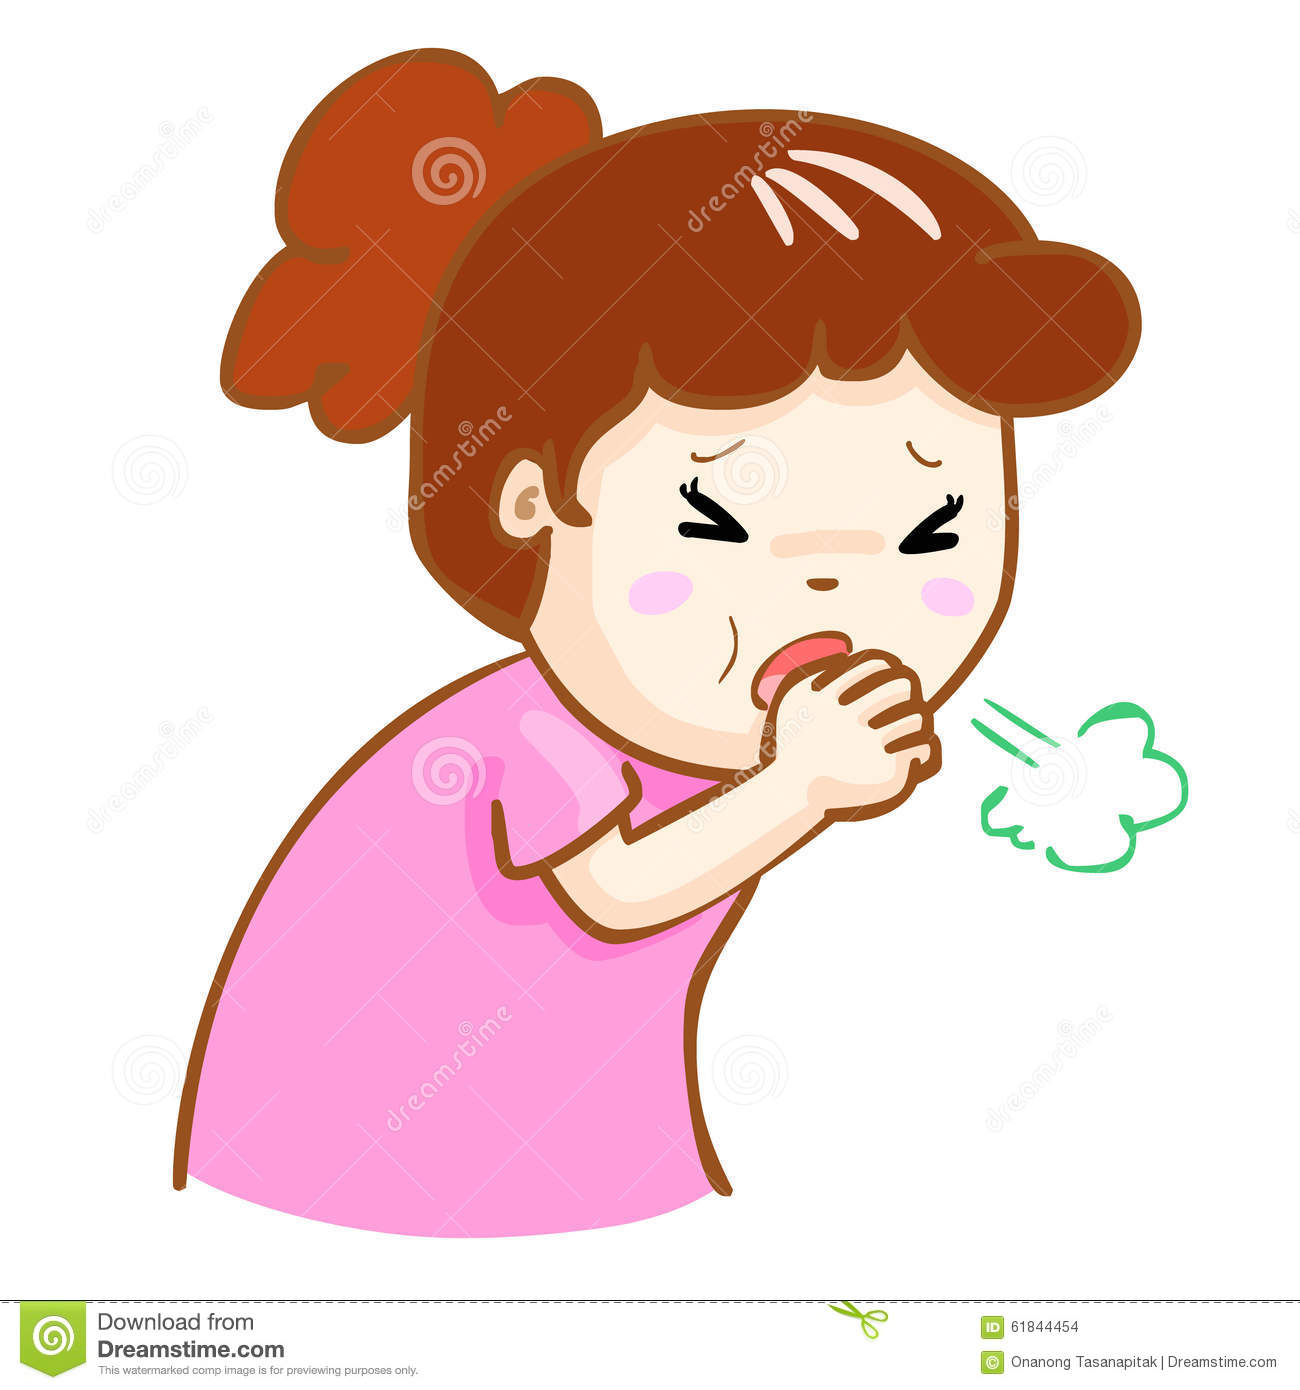 Clipart of coughing clipart images gallery for free download.